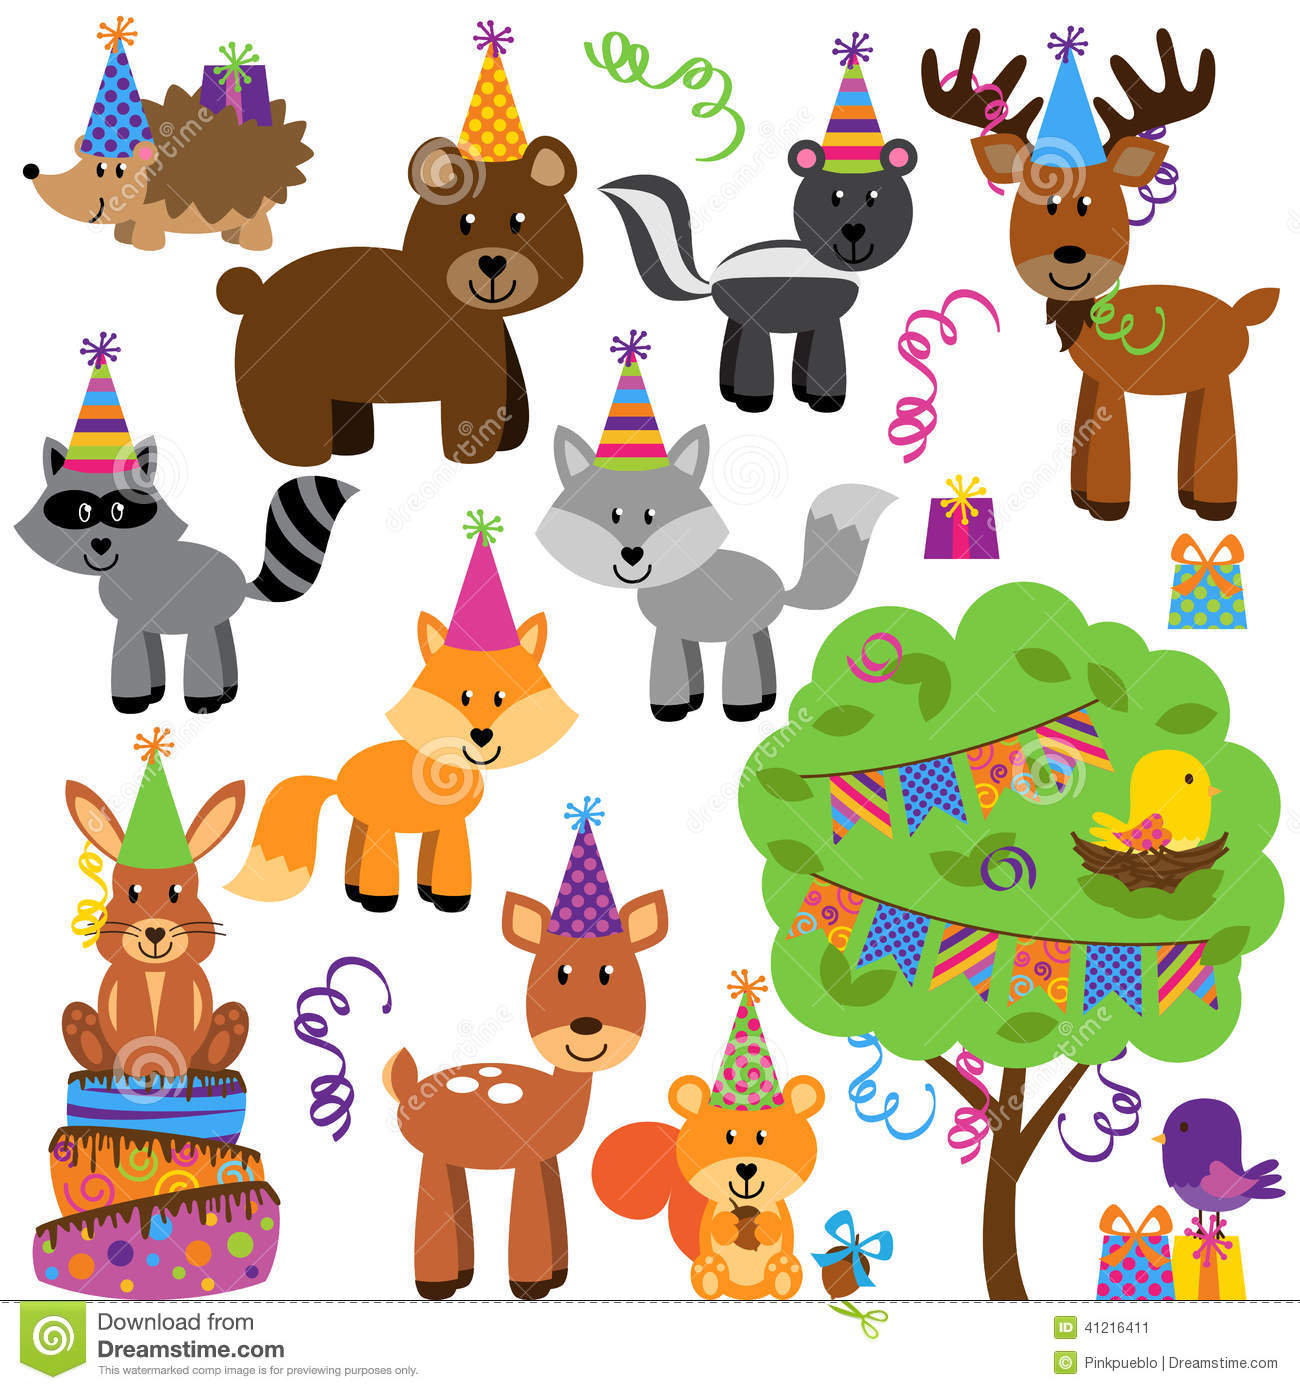 Woodland Themed Birthday Invitations is great invitations layout